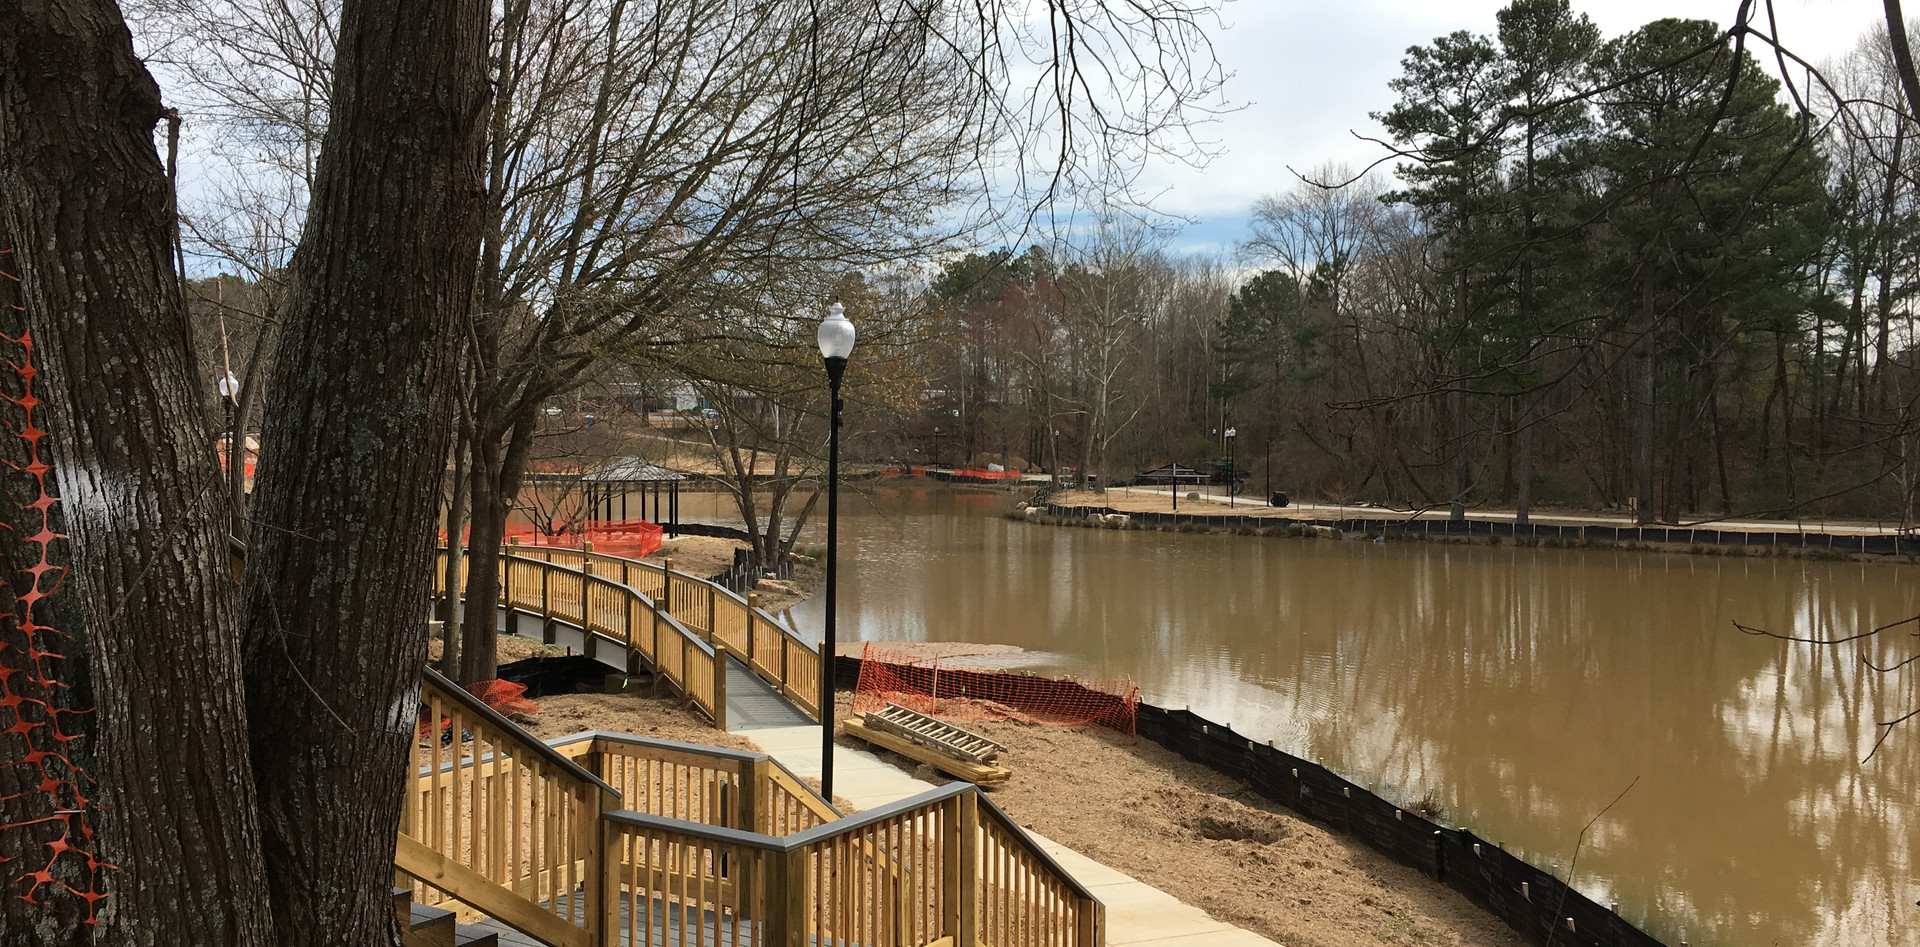 Pinnacle Park is the newest addition to the Norcross park system! It is currently under construction and will open later this year. It is located off Brook Hollow Parkway in southeast Norcross.